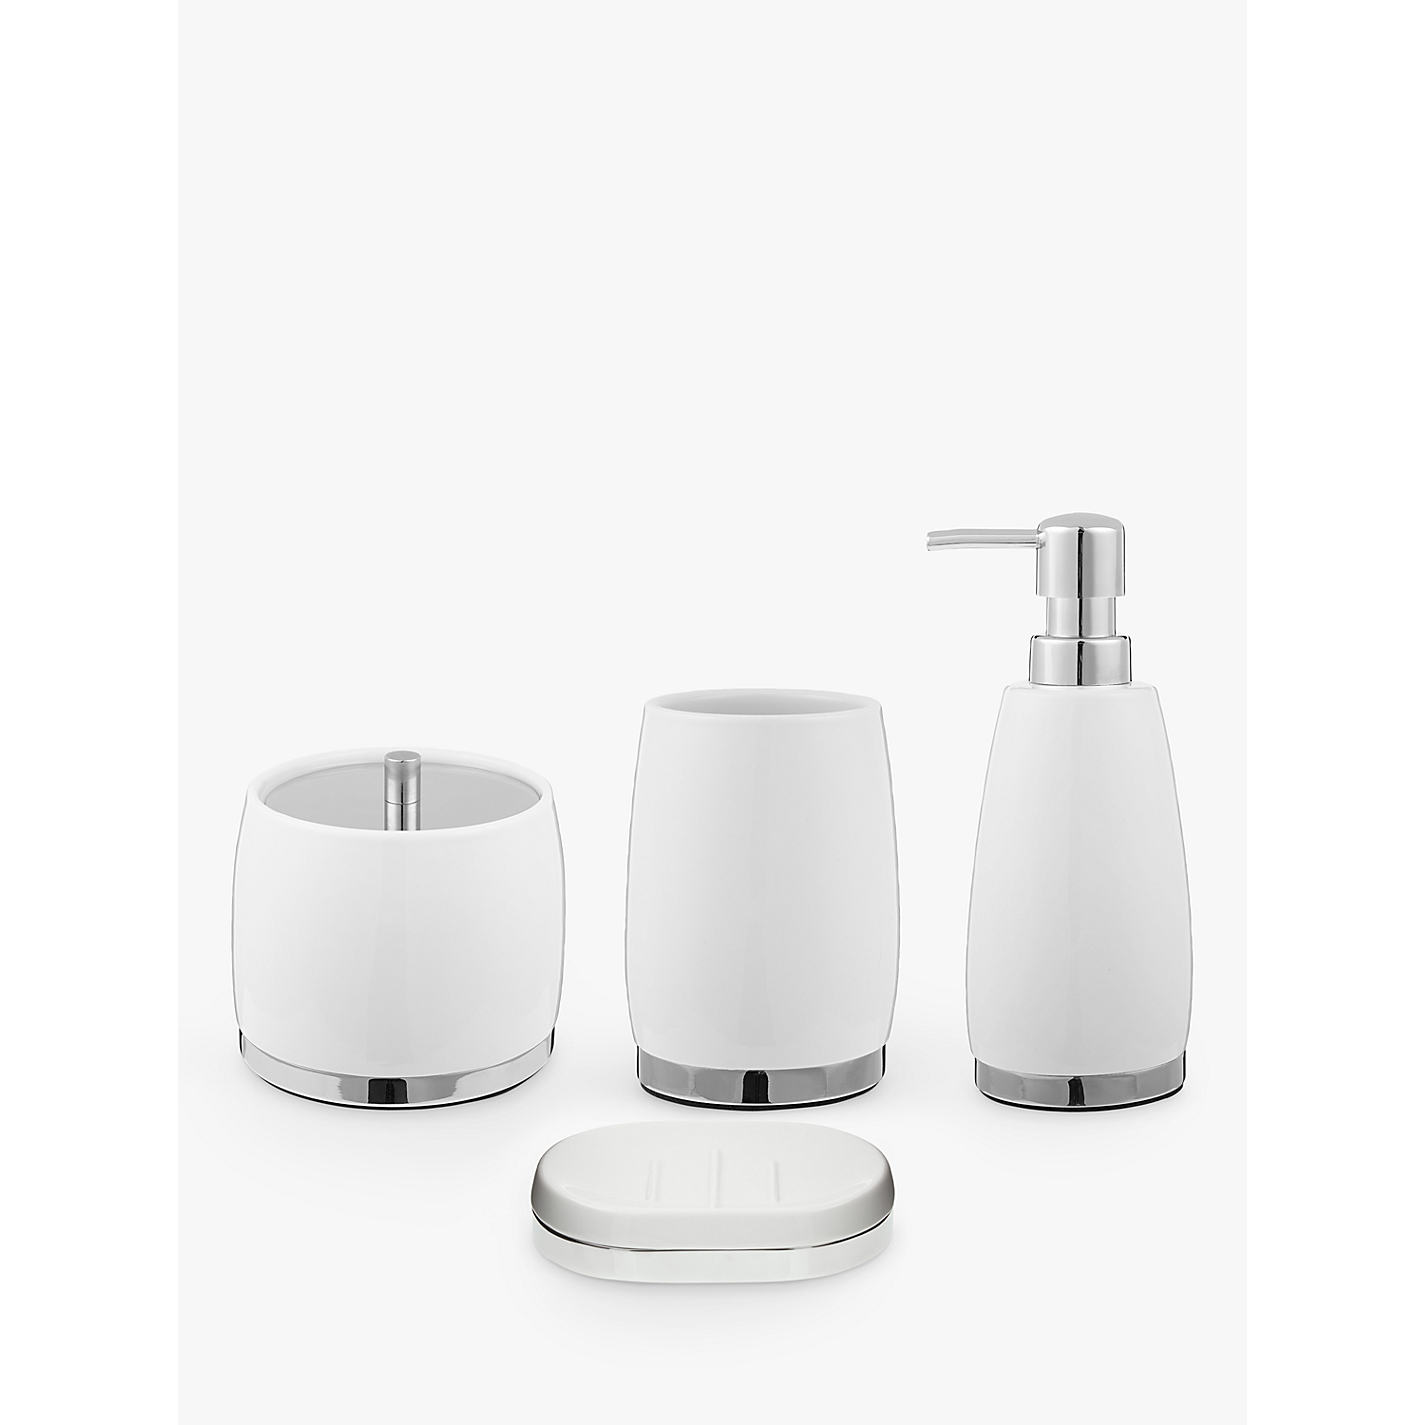 Buy John Lewis London Bathroom Accessories Online At Johnlewis.com ...